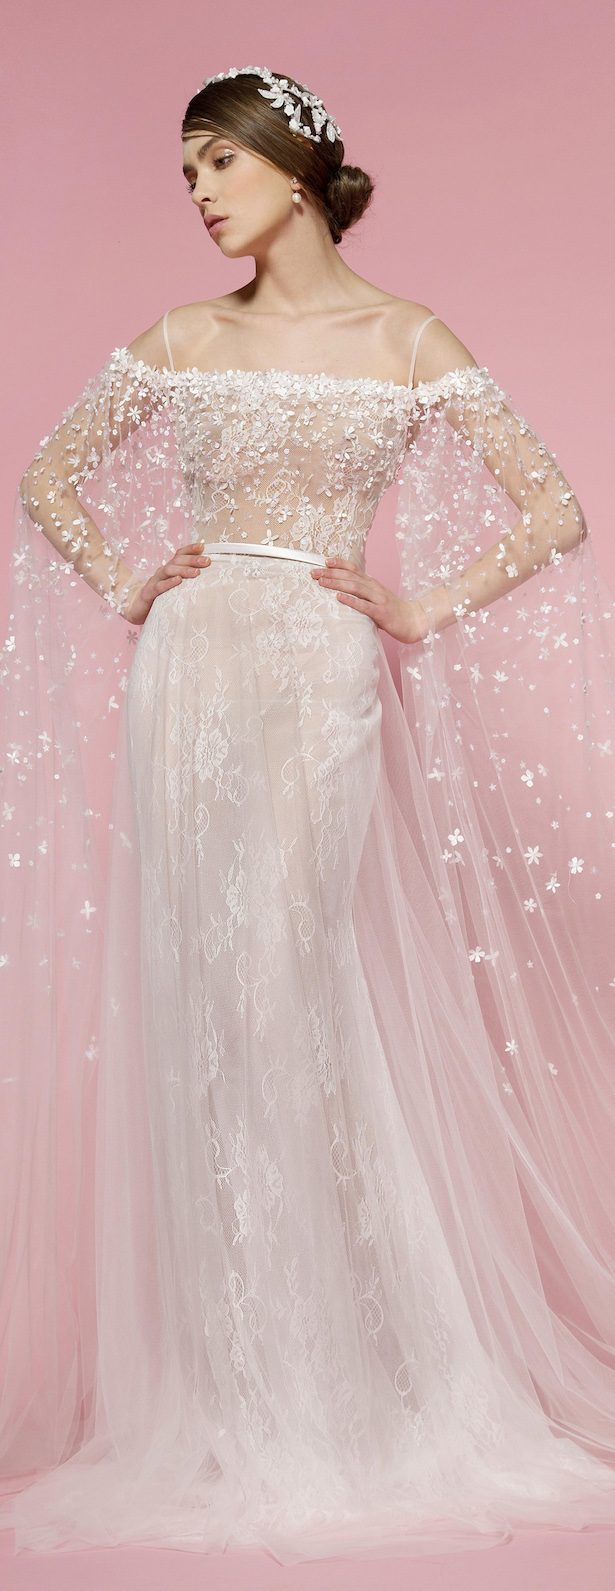 Georges Hobeika Bridal 2018 Wedding Dresses